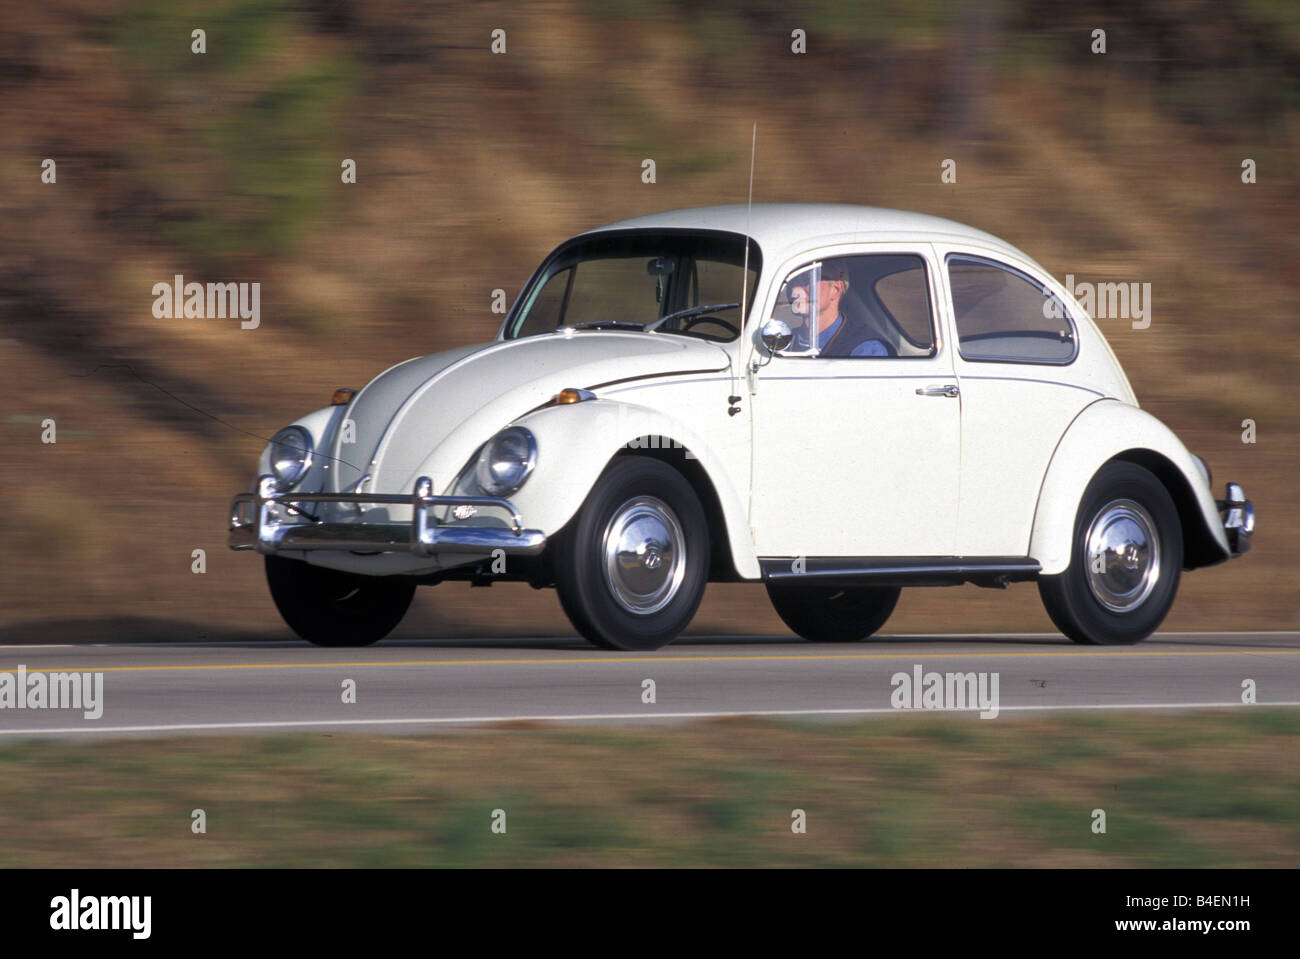 Car Vw Volkswagen Beetle 1300 Model Year 1965 1973 Vintage Car